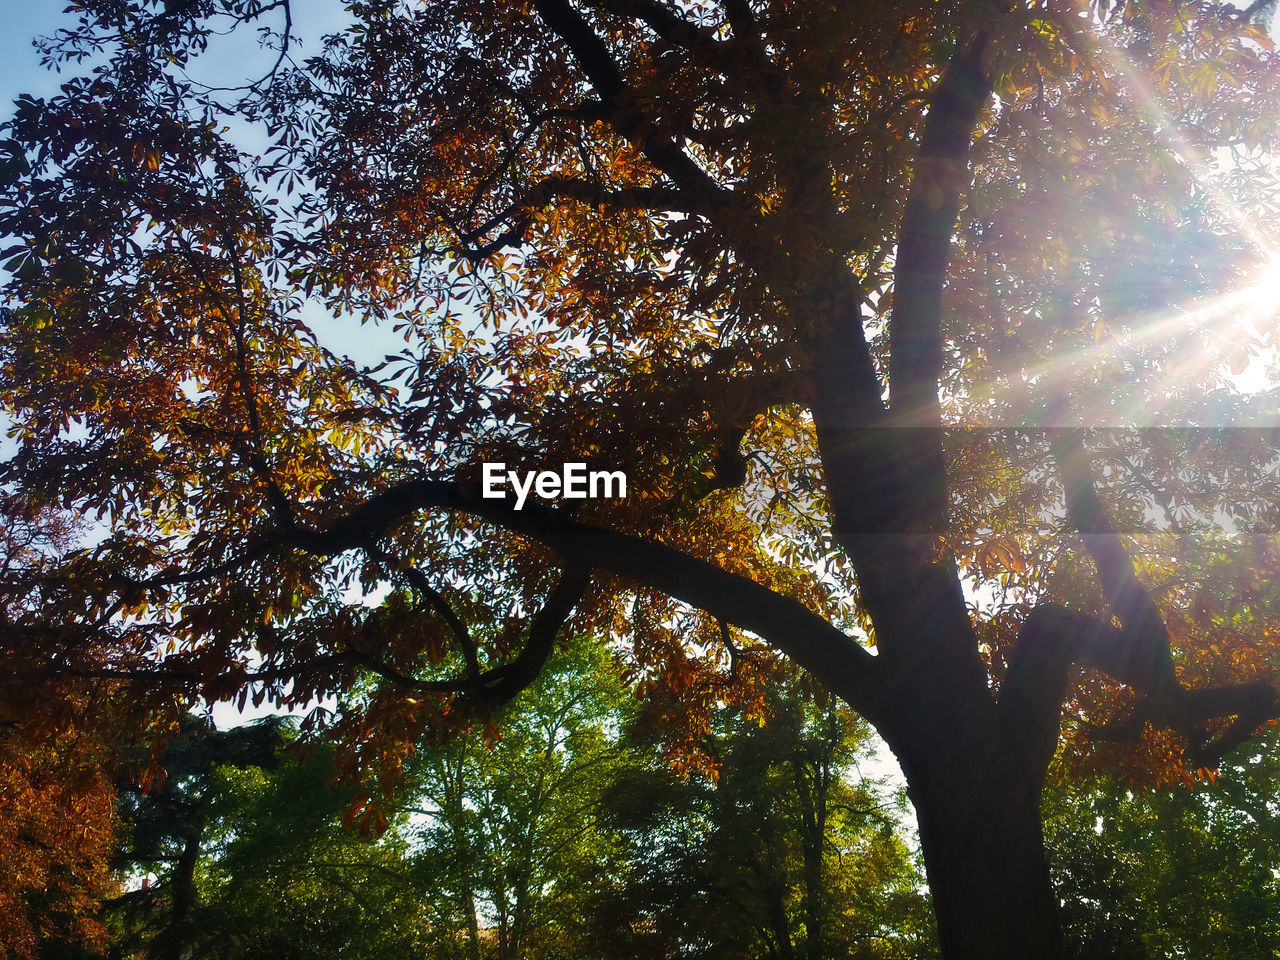 tree, low angle view, nature, growth, beauty in nature, branch, tranquility, day, tree trunk, outdoors, forest, leaf, no people, scenics, autumn, sky